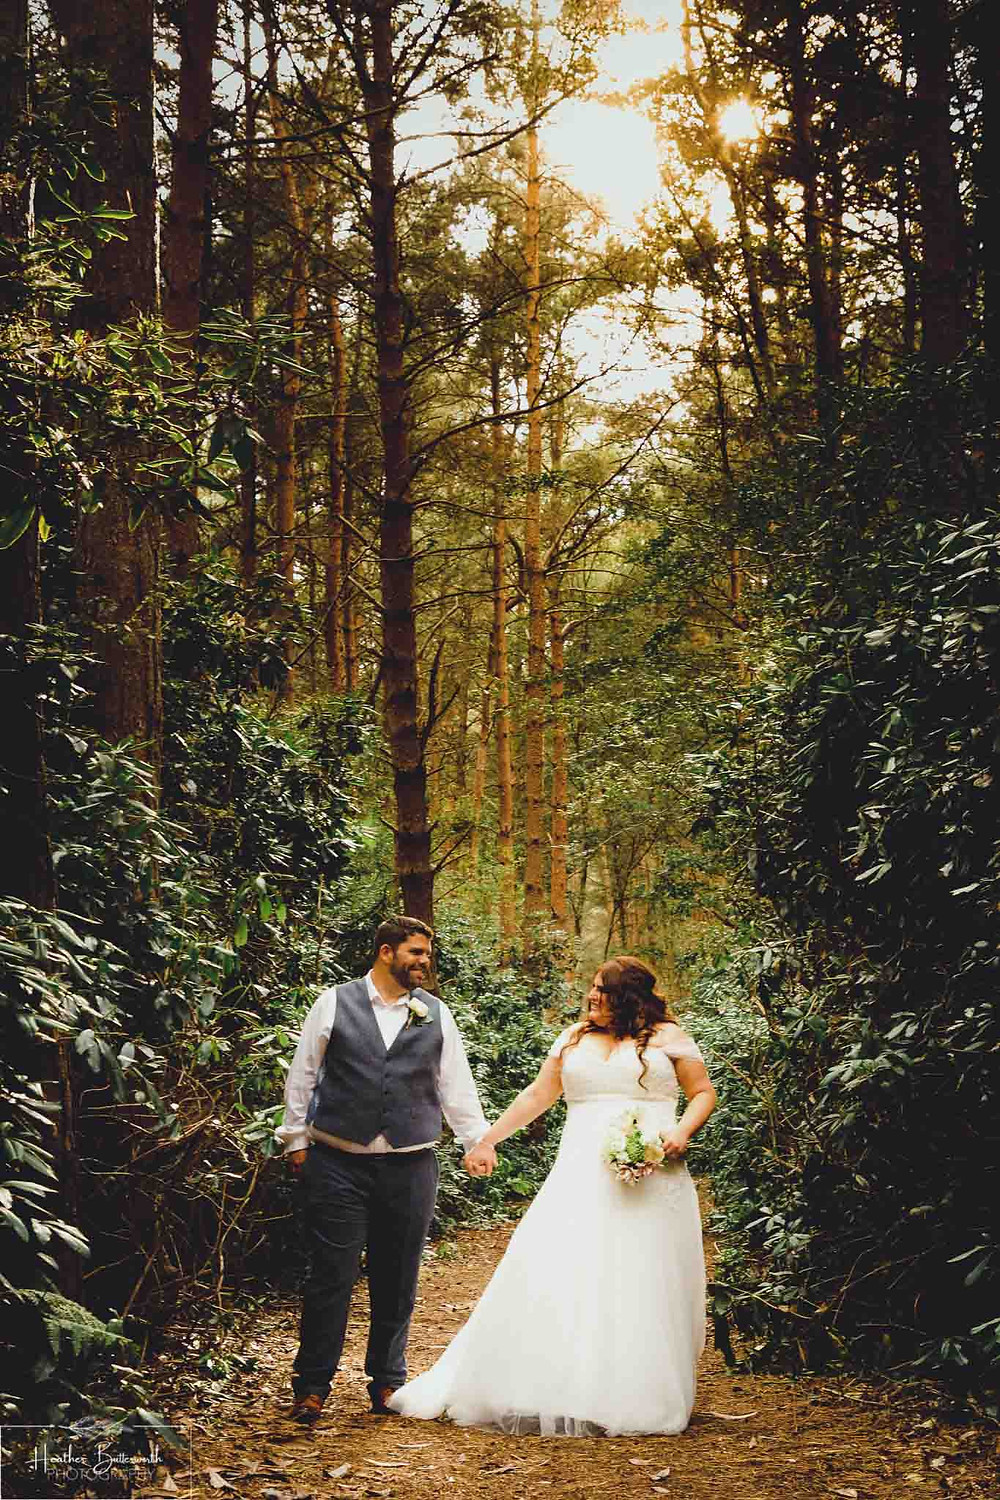 Bride and groom holding hands and gazing at each other in the woods with the sun behind them at Sandburn Hall in York, Yorkshire